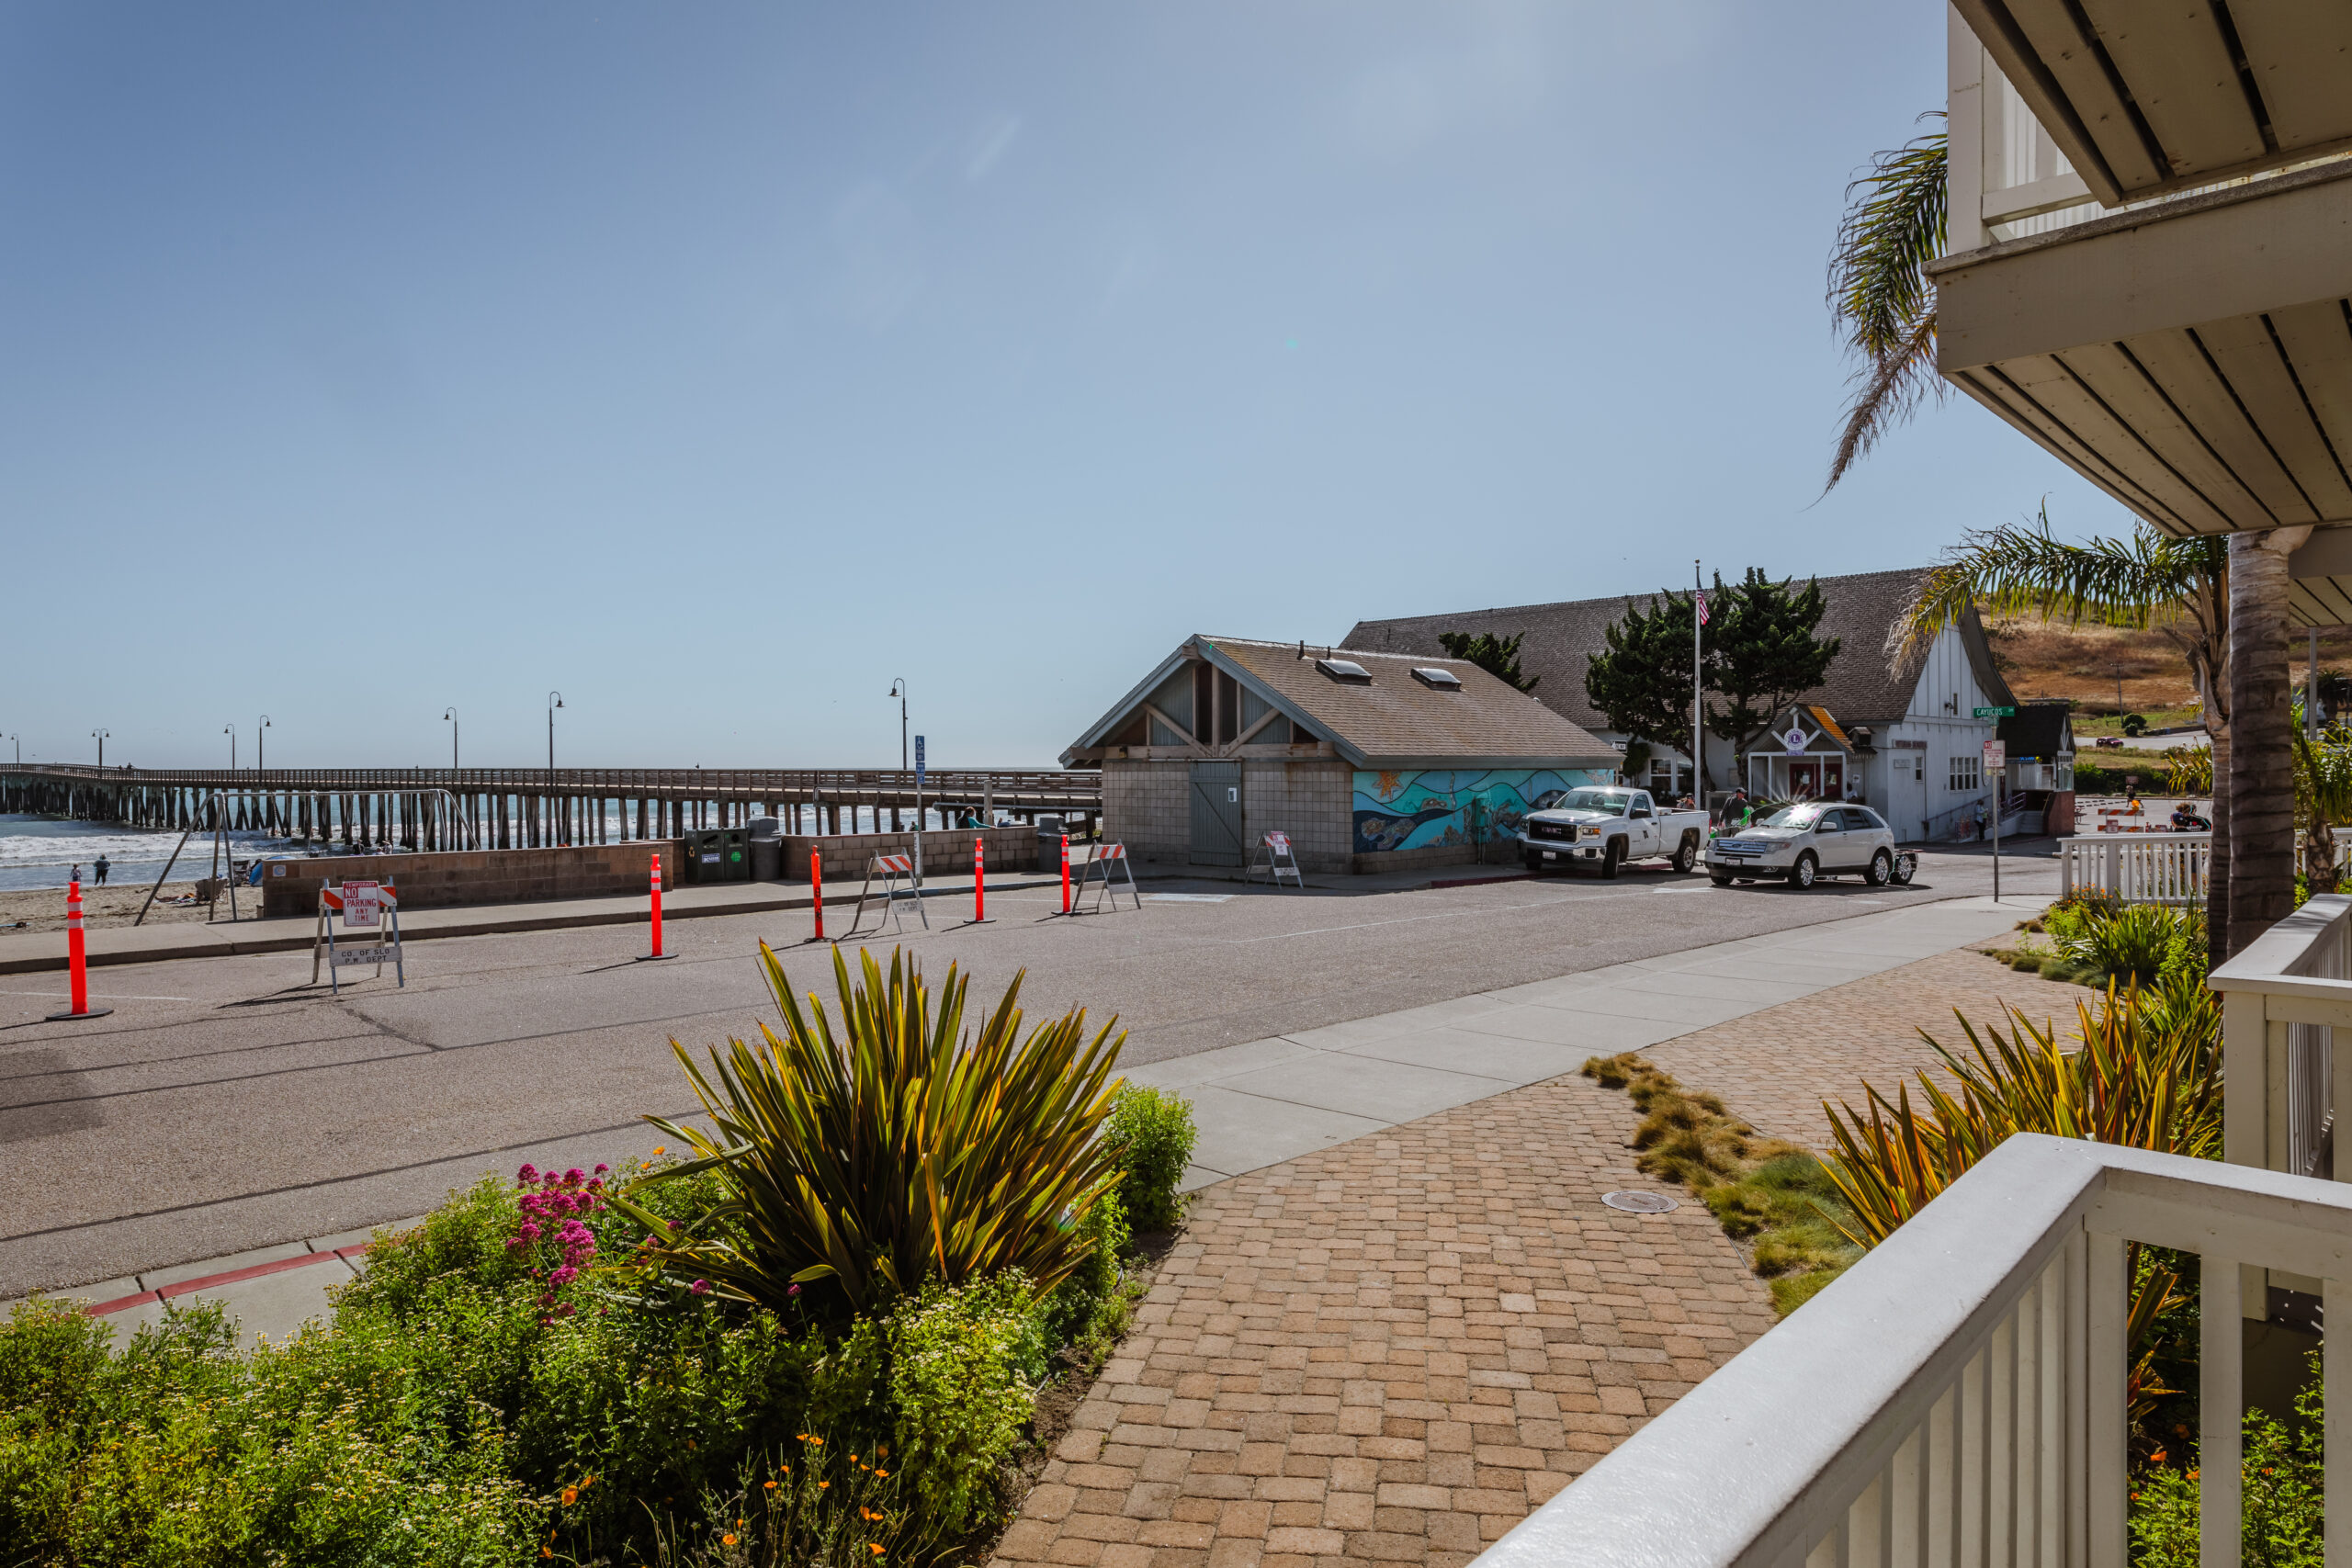 Room 1 Pier and beach view